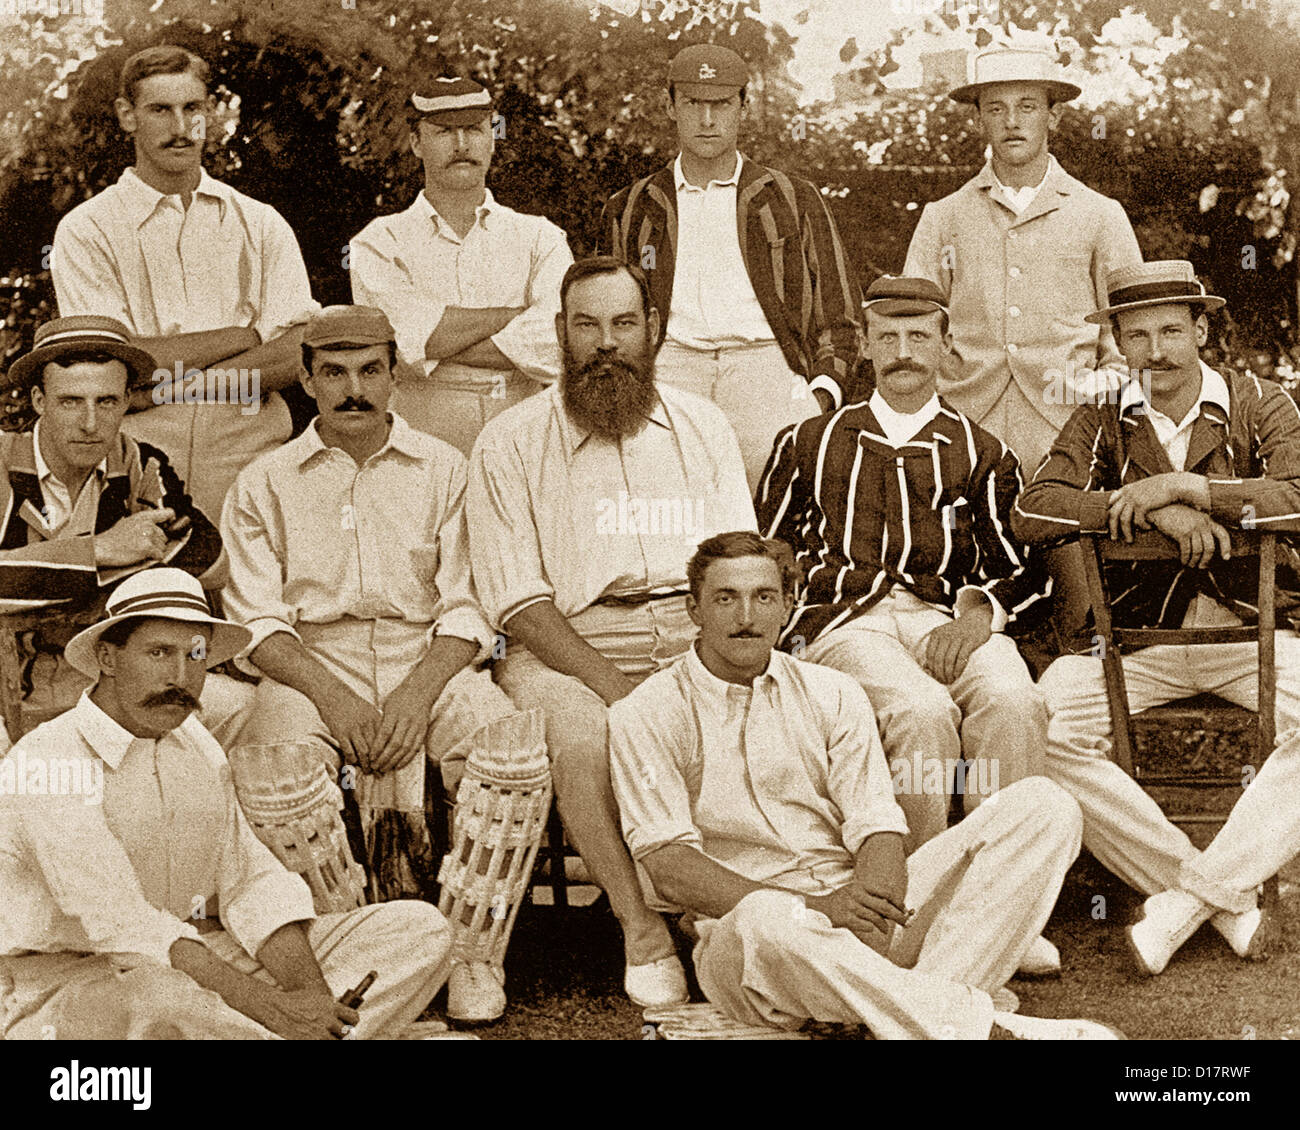 The Gentlemen Cricket Team in 1895 - Stock Image